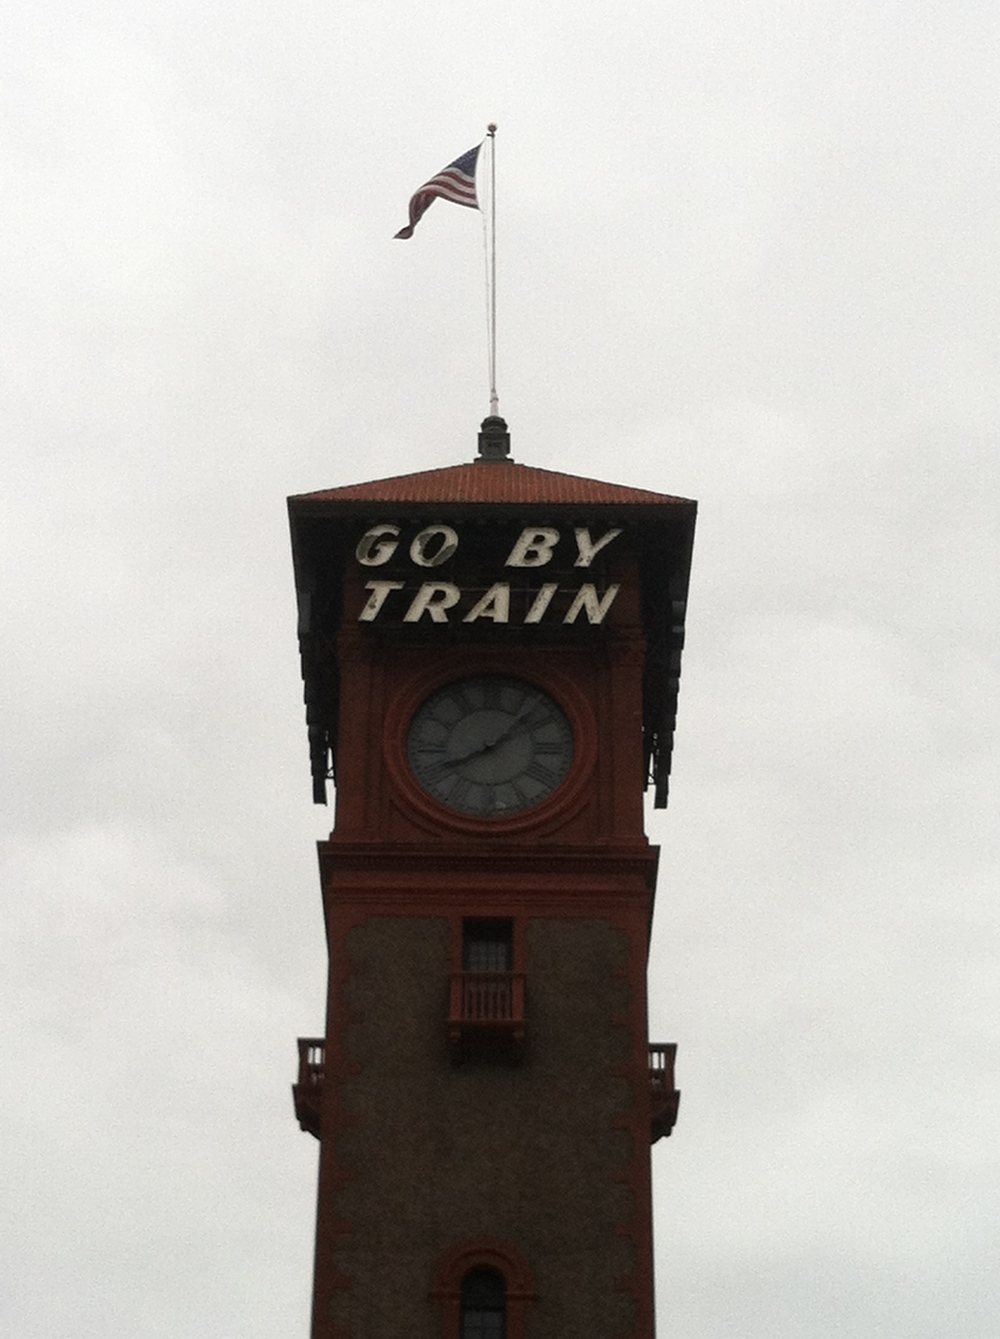 The train station in PDX.